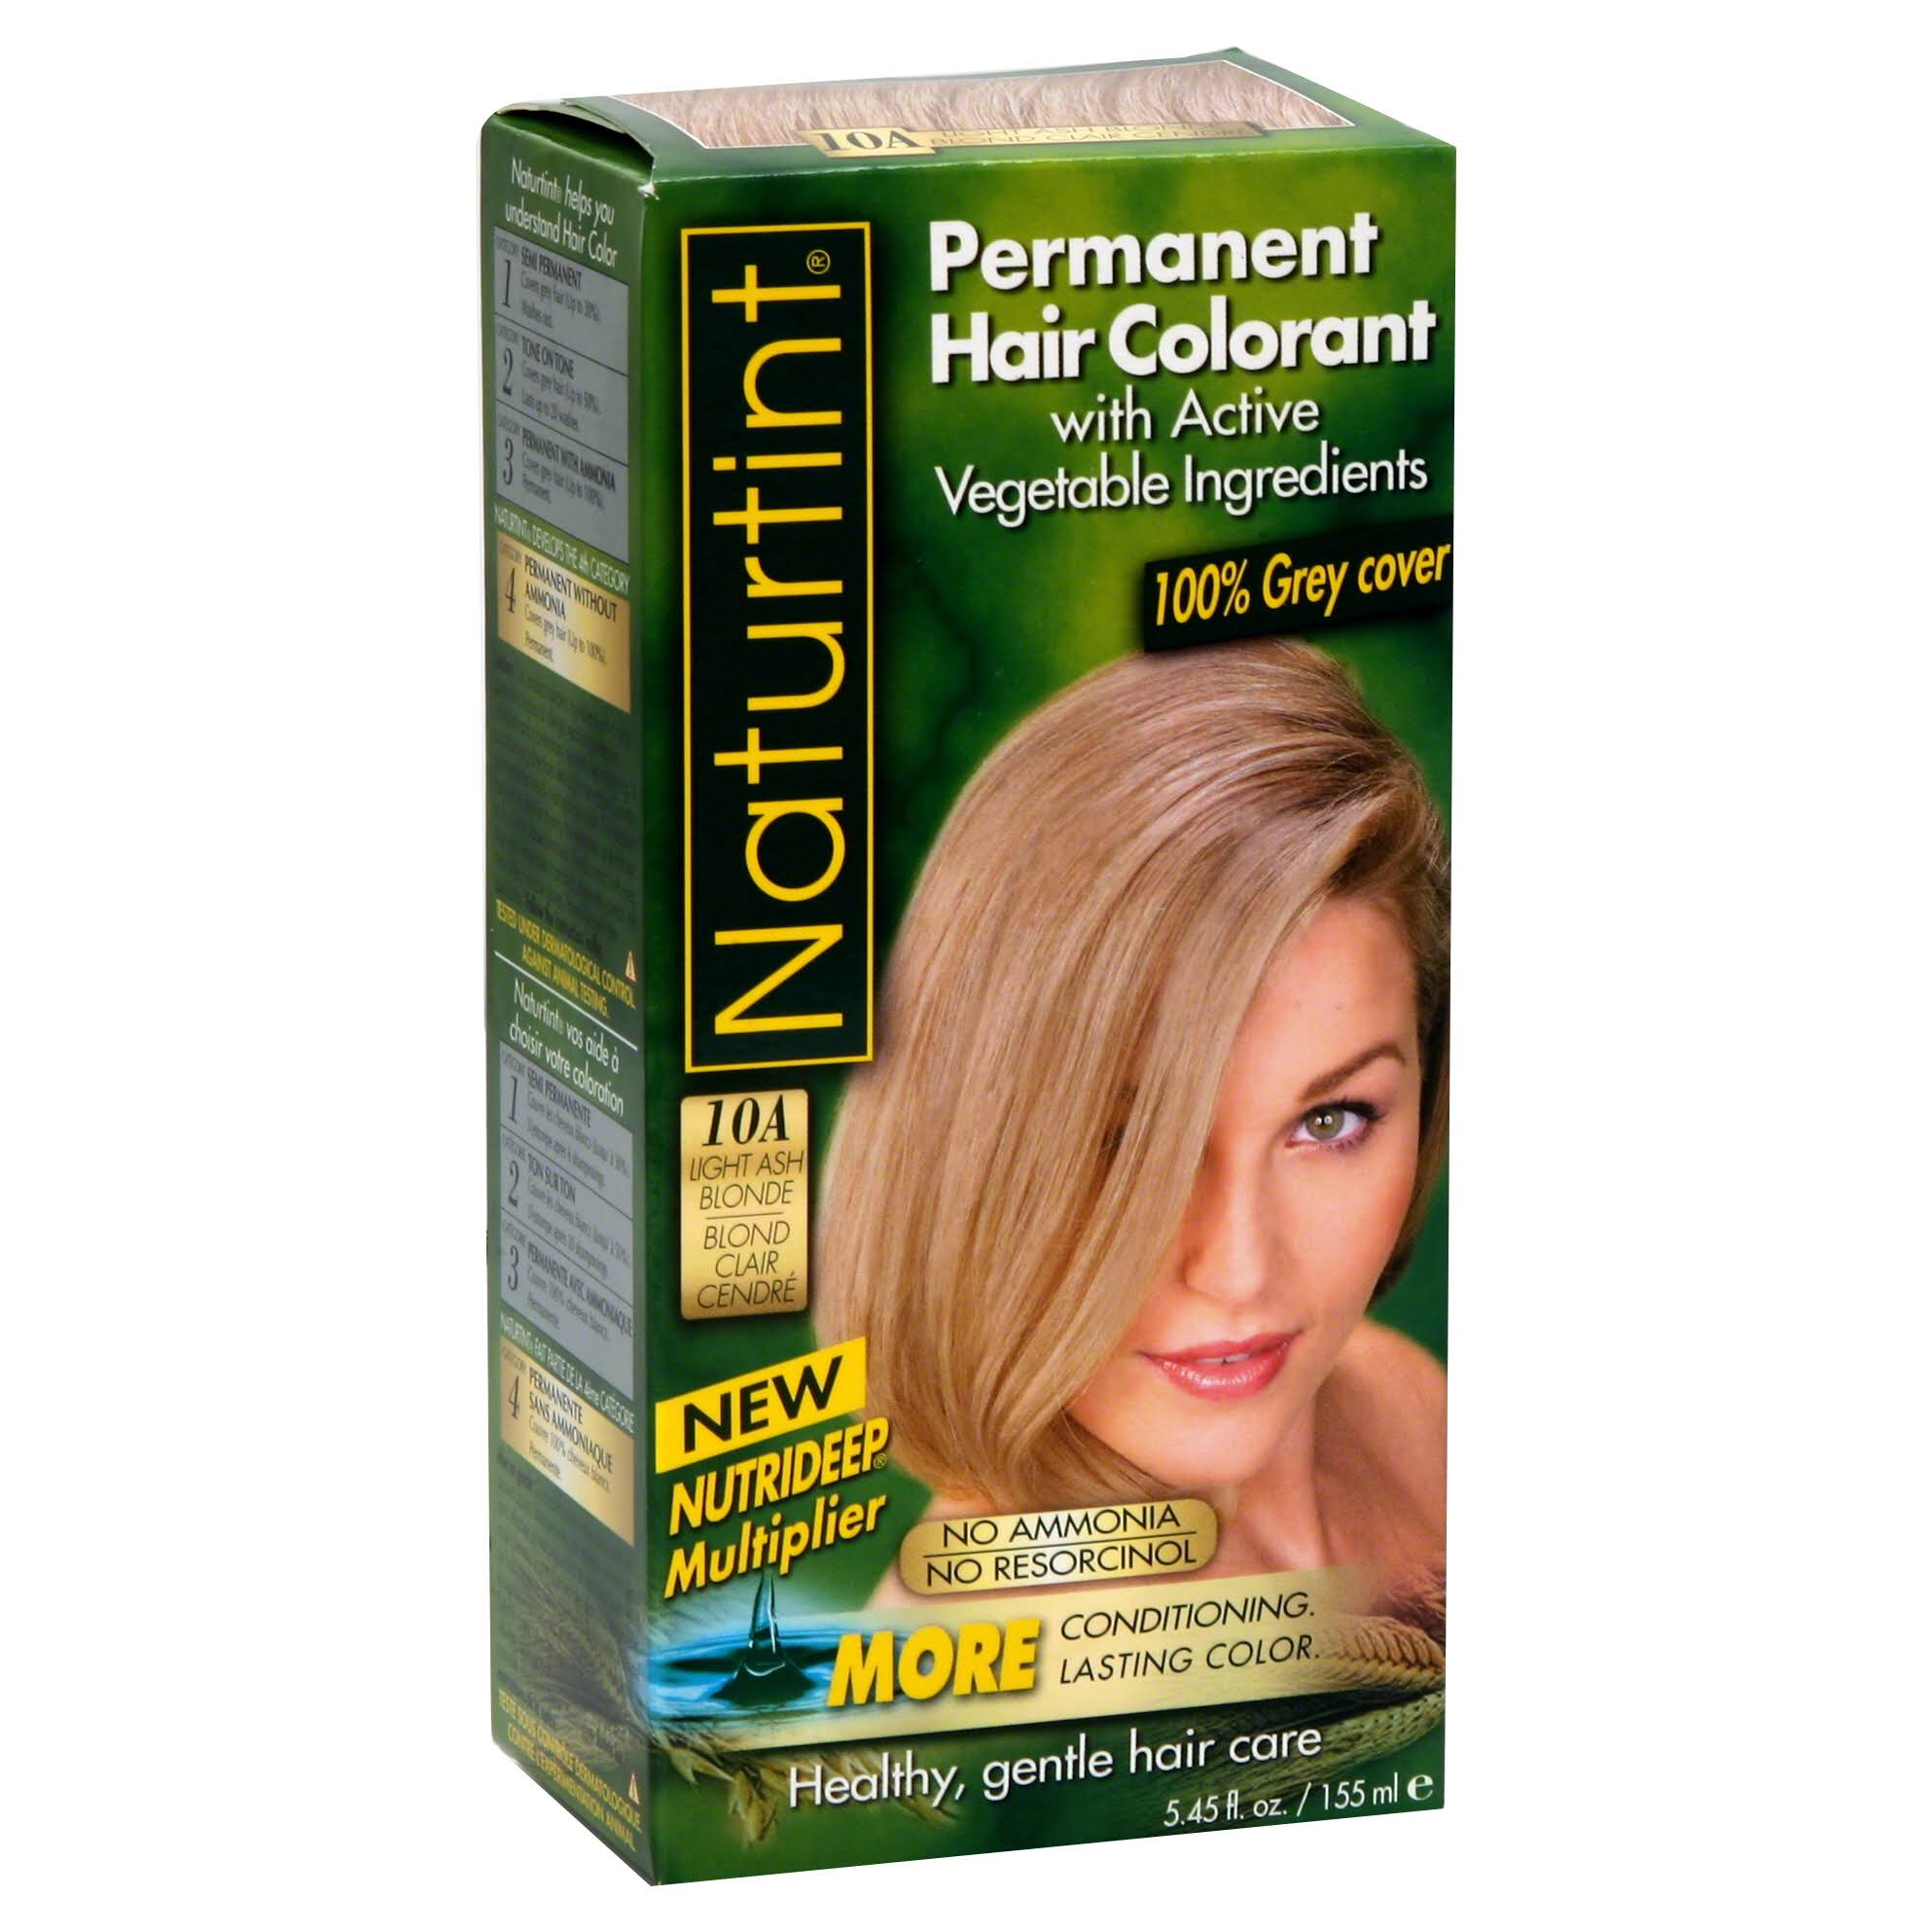 Naturtint Permanent Hair Colour - 10A Light Ash Blonde